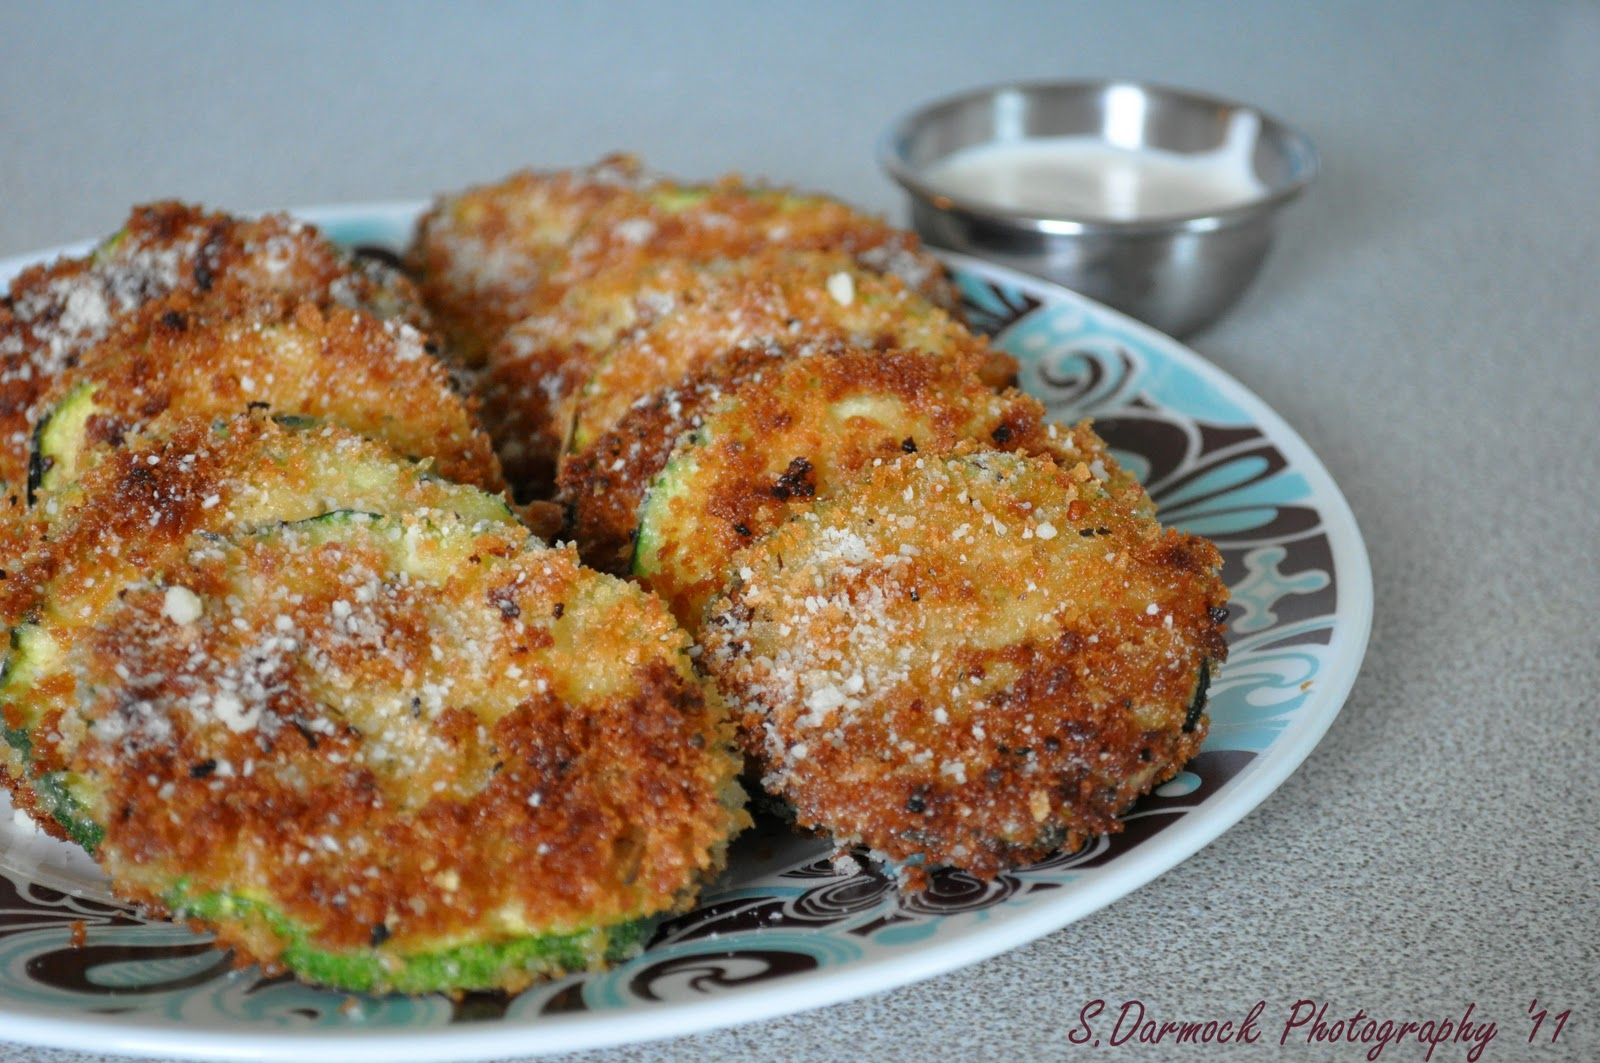 ... green onions parmesan encrusted zucchini parmesan encrusted zucchini